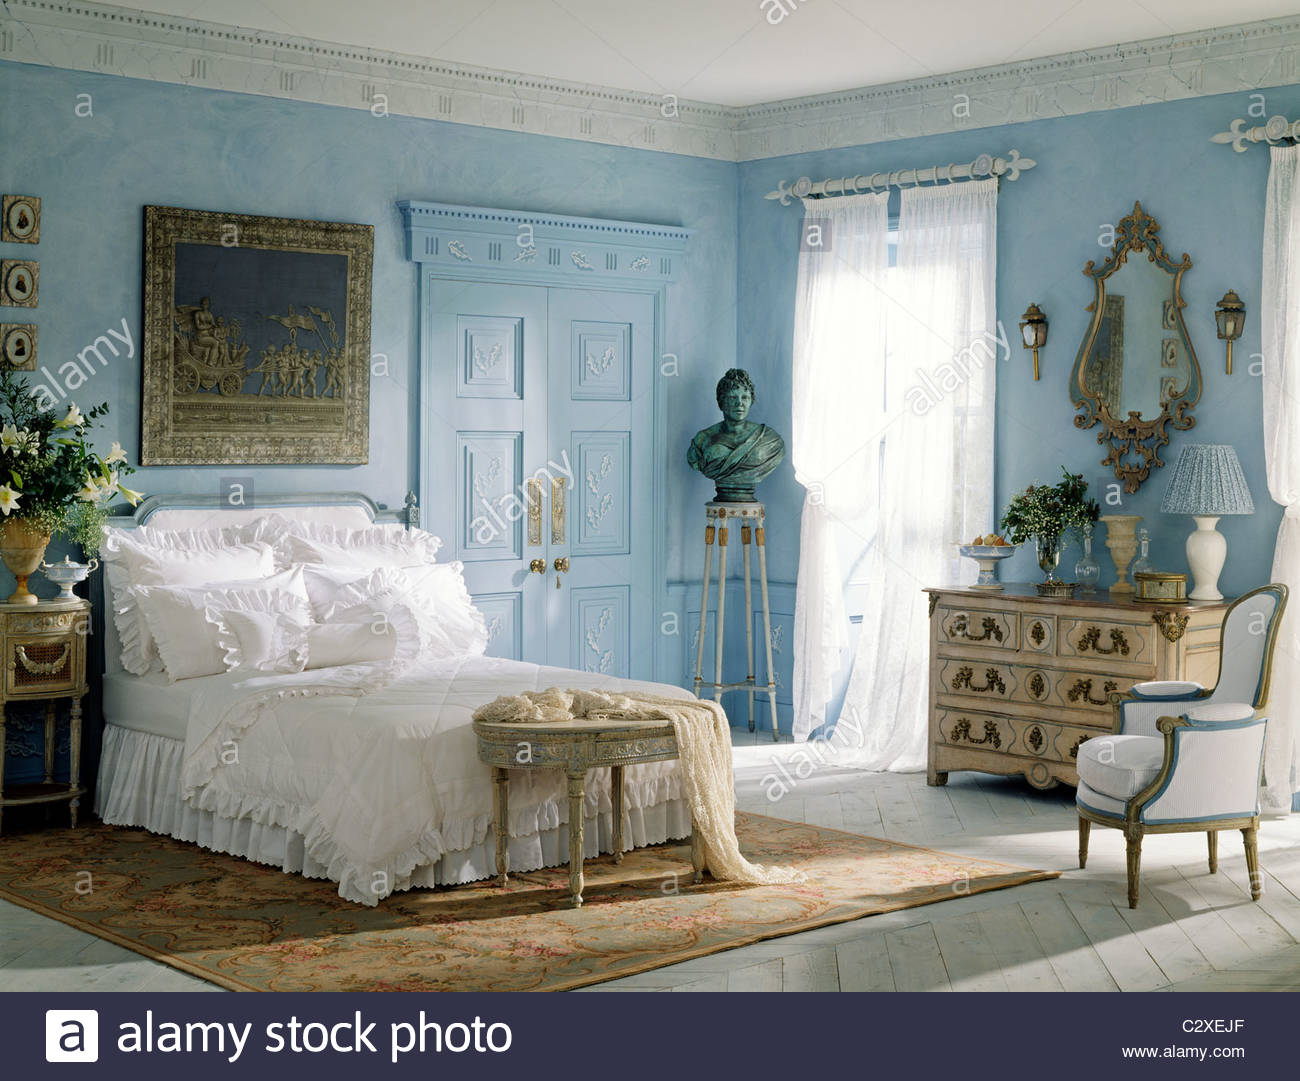 blue white bedroom french style furniture stock photo royalty free image 36232295 alamy. Black Bedroom Furniture Sets. Home Design Ideas